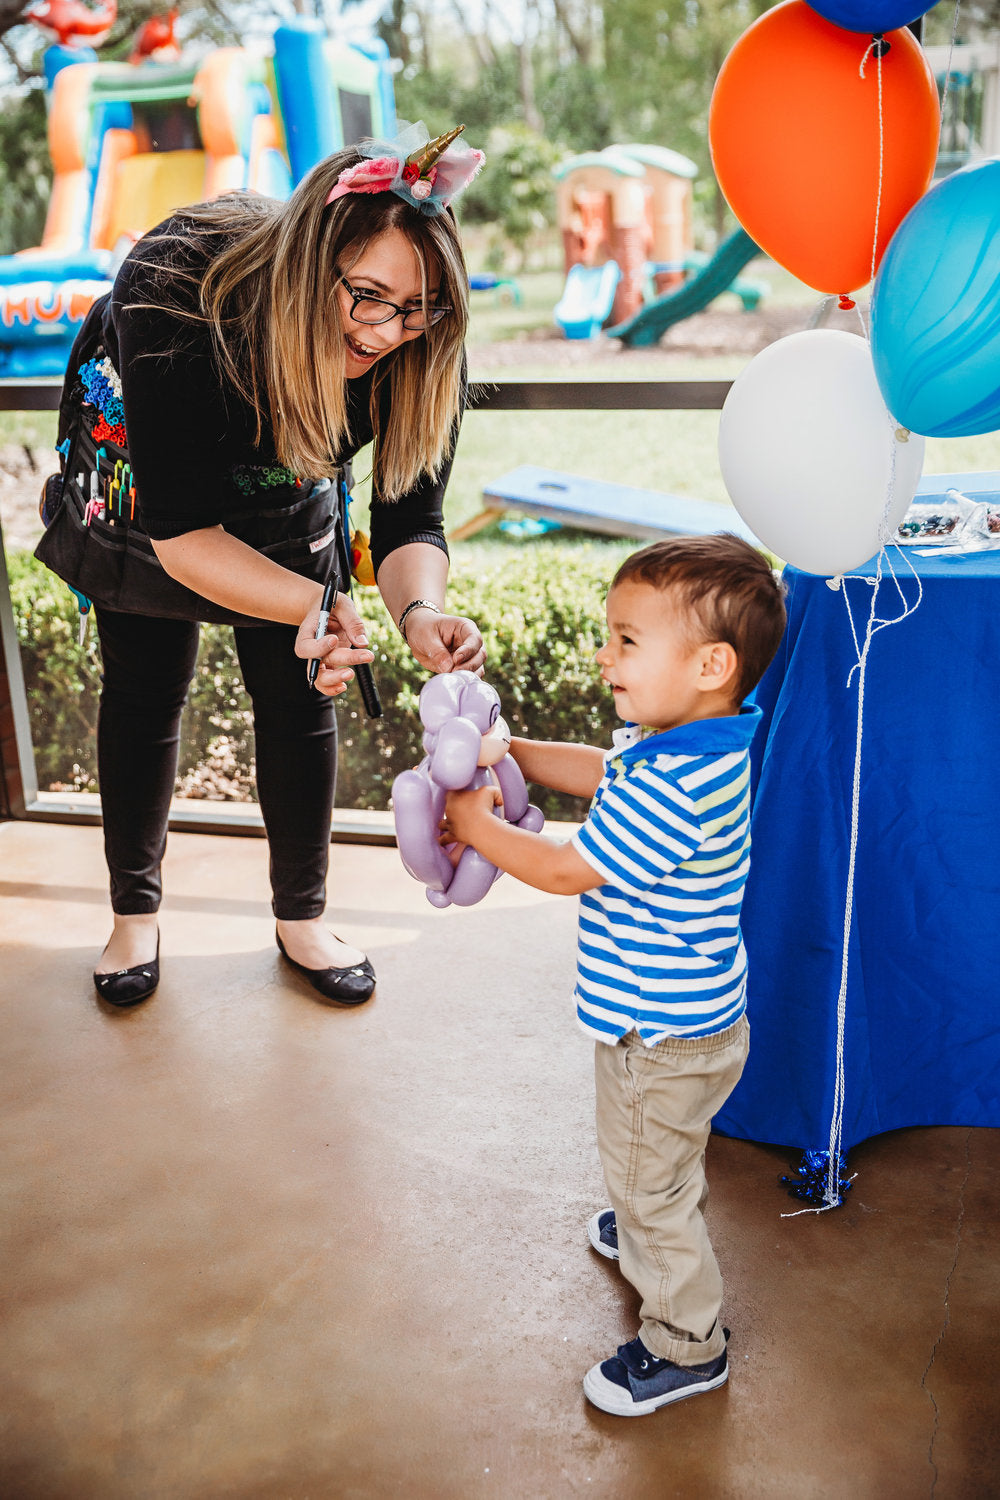 Female adult handing balloon animal to small boy